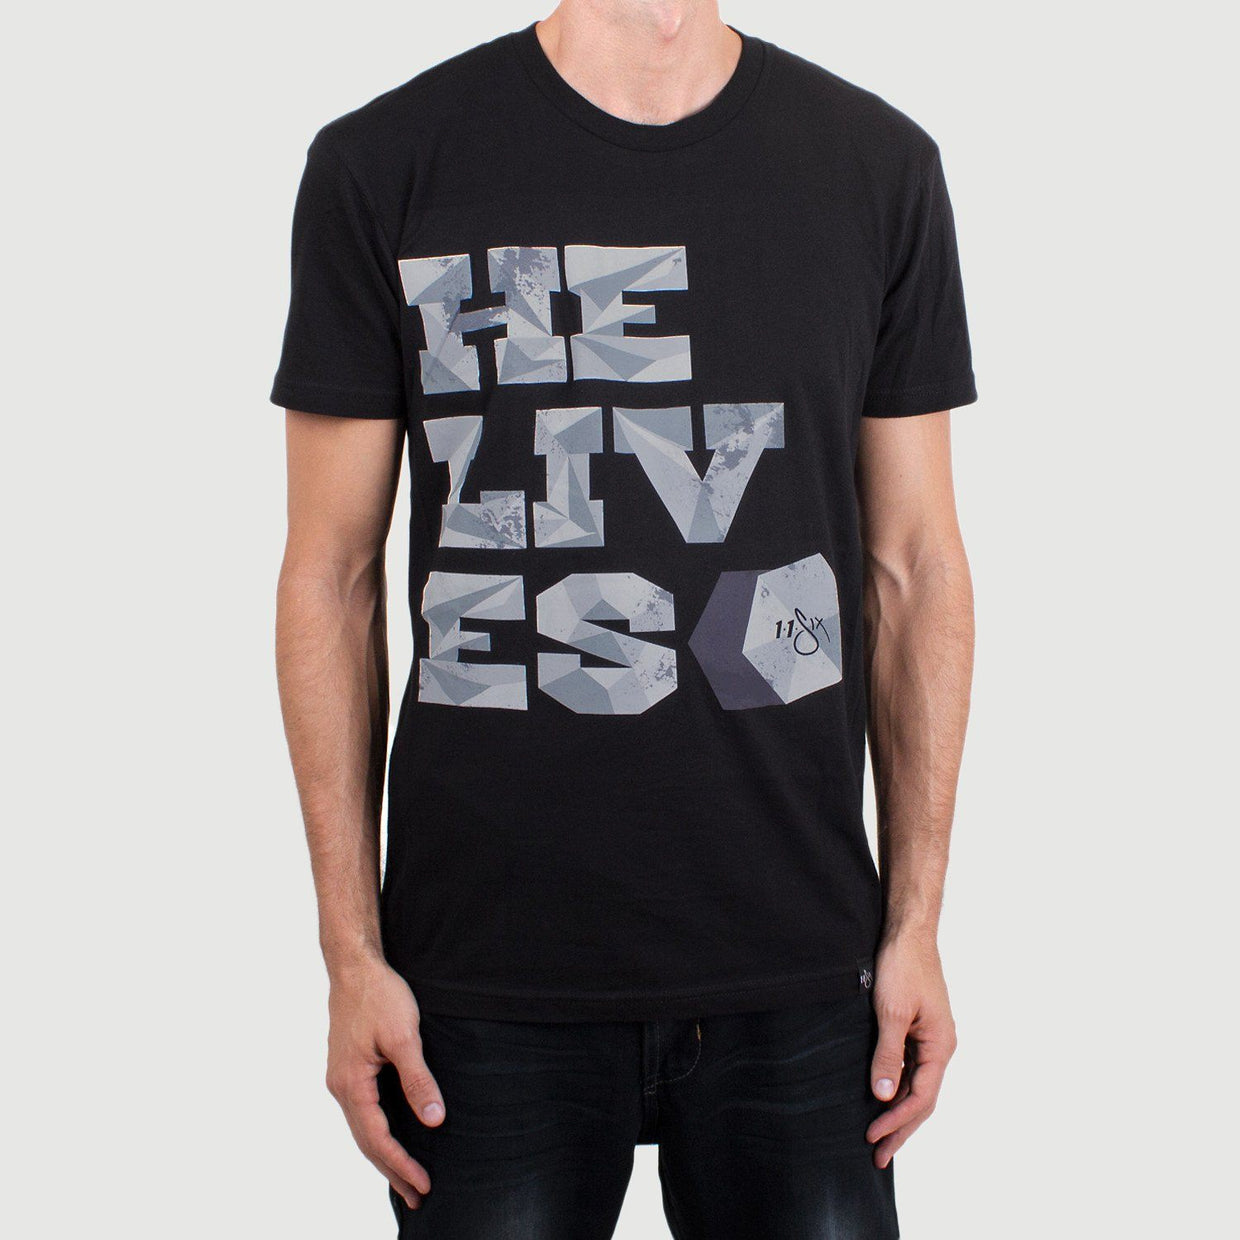 Reach Records Tedashii 'He Lives' T-Shirt